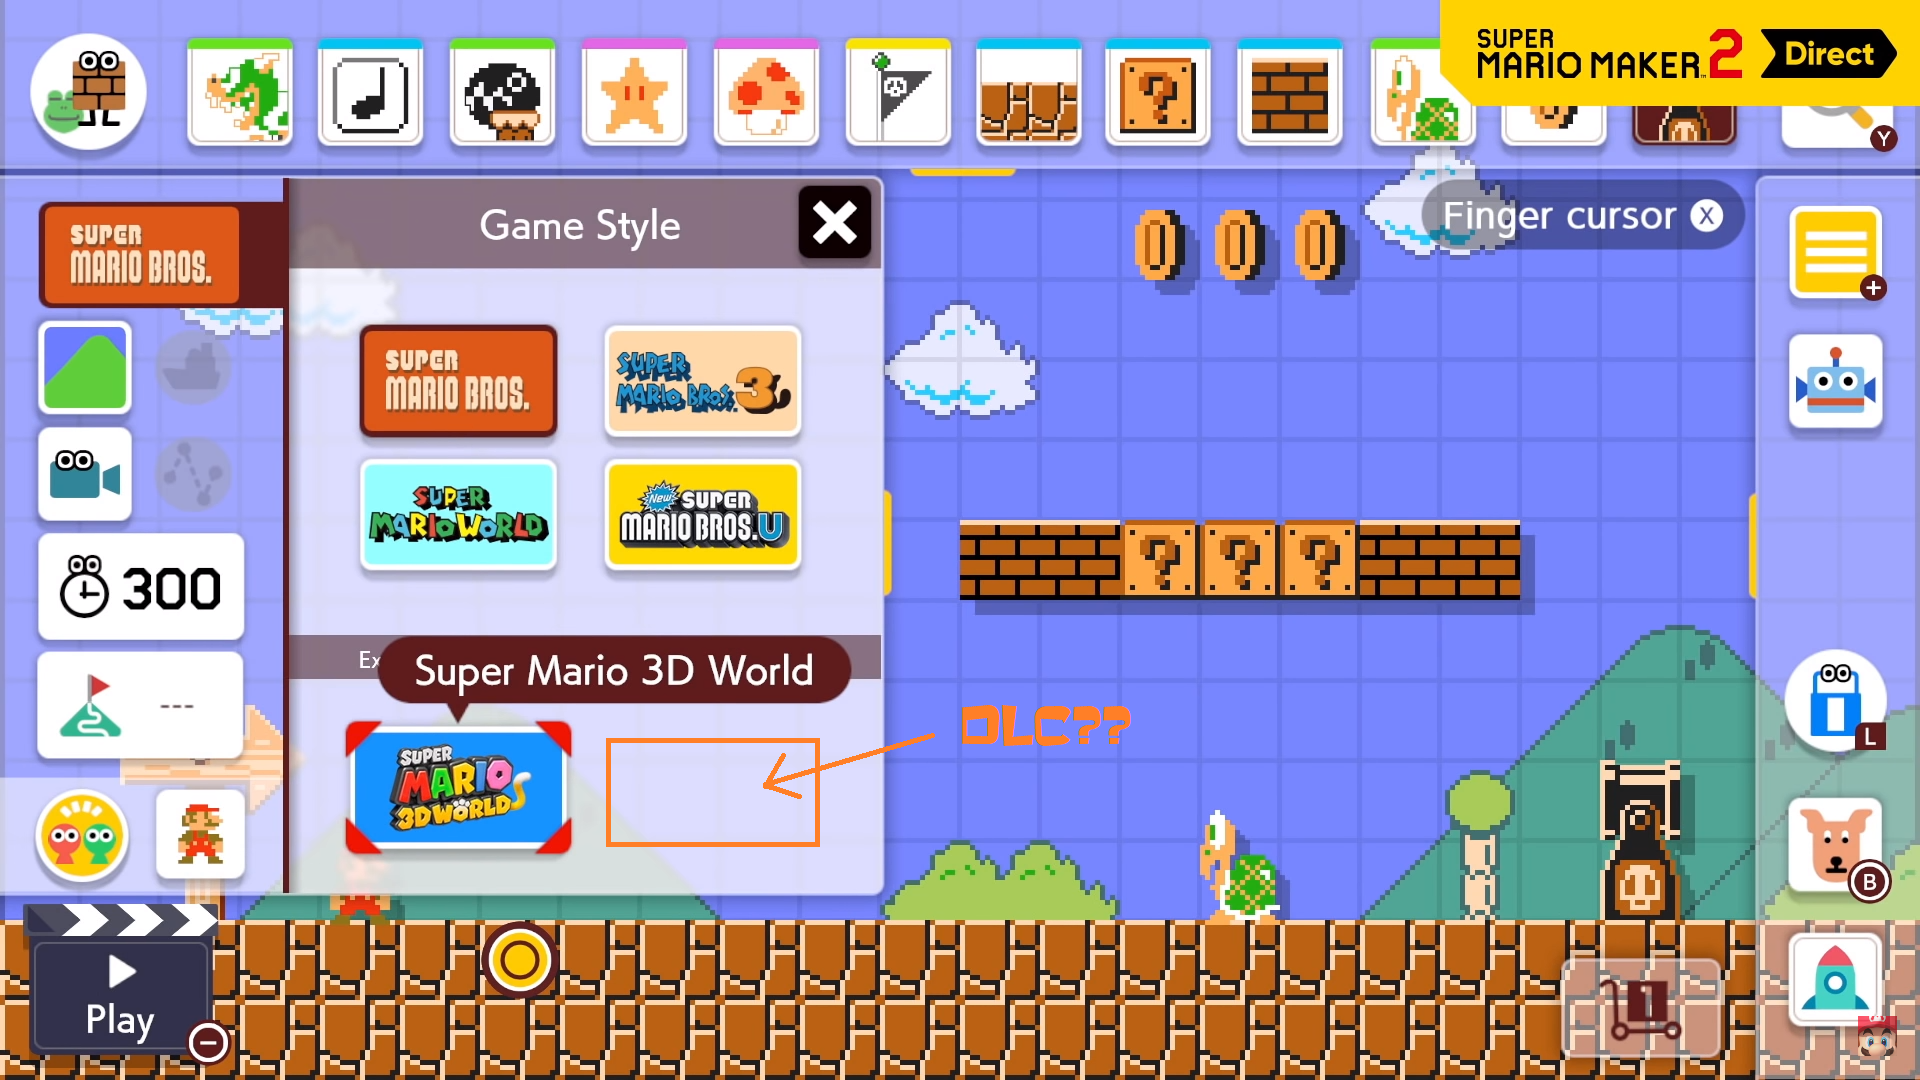 Super Mario Maker 2 3D World Game Style